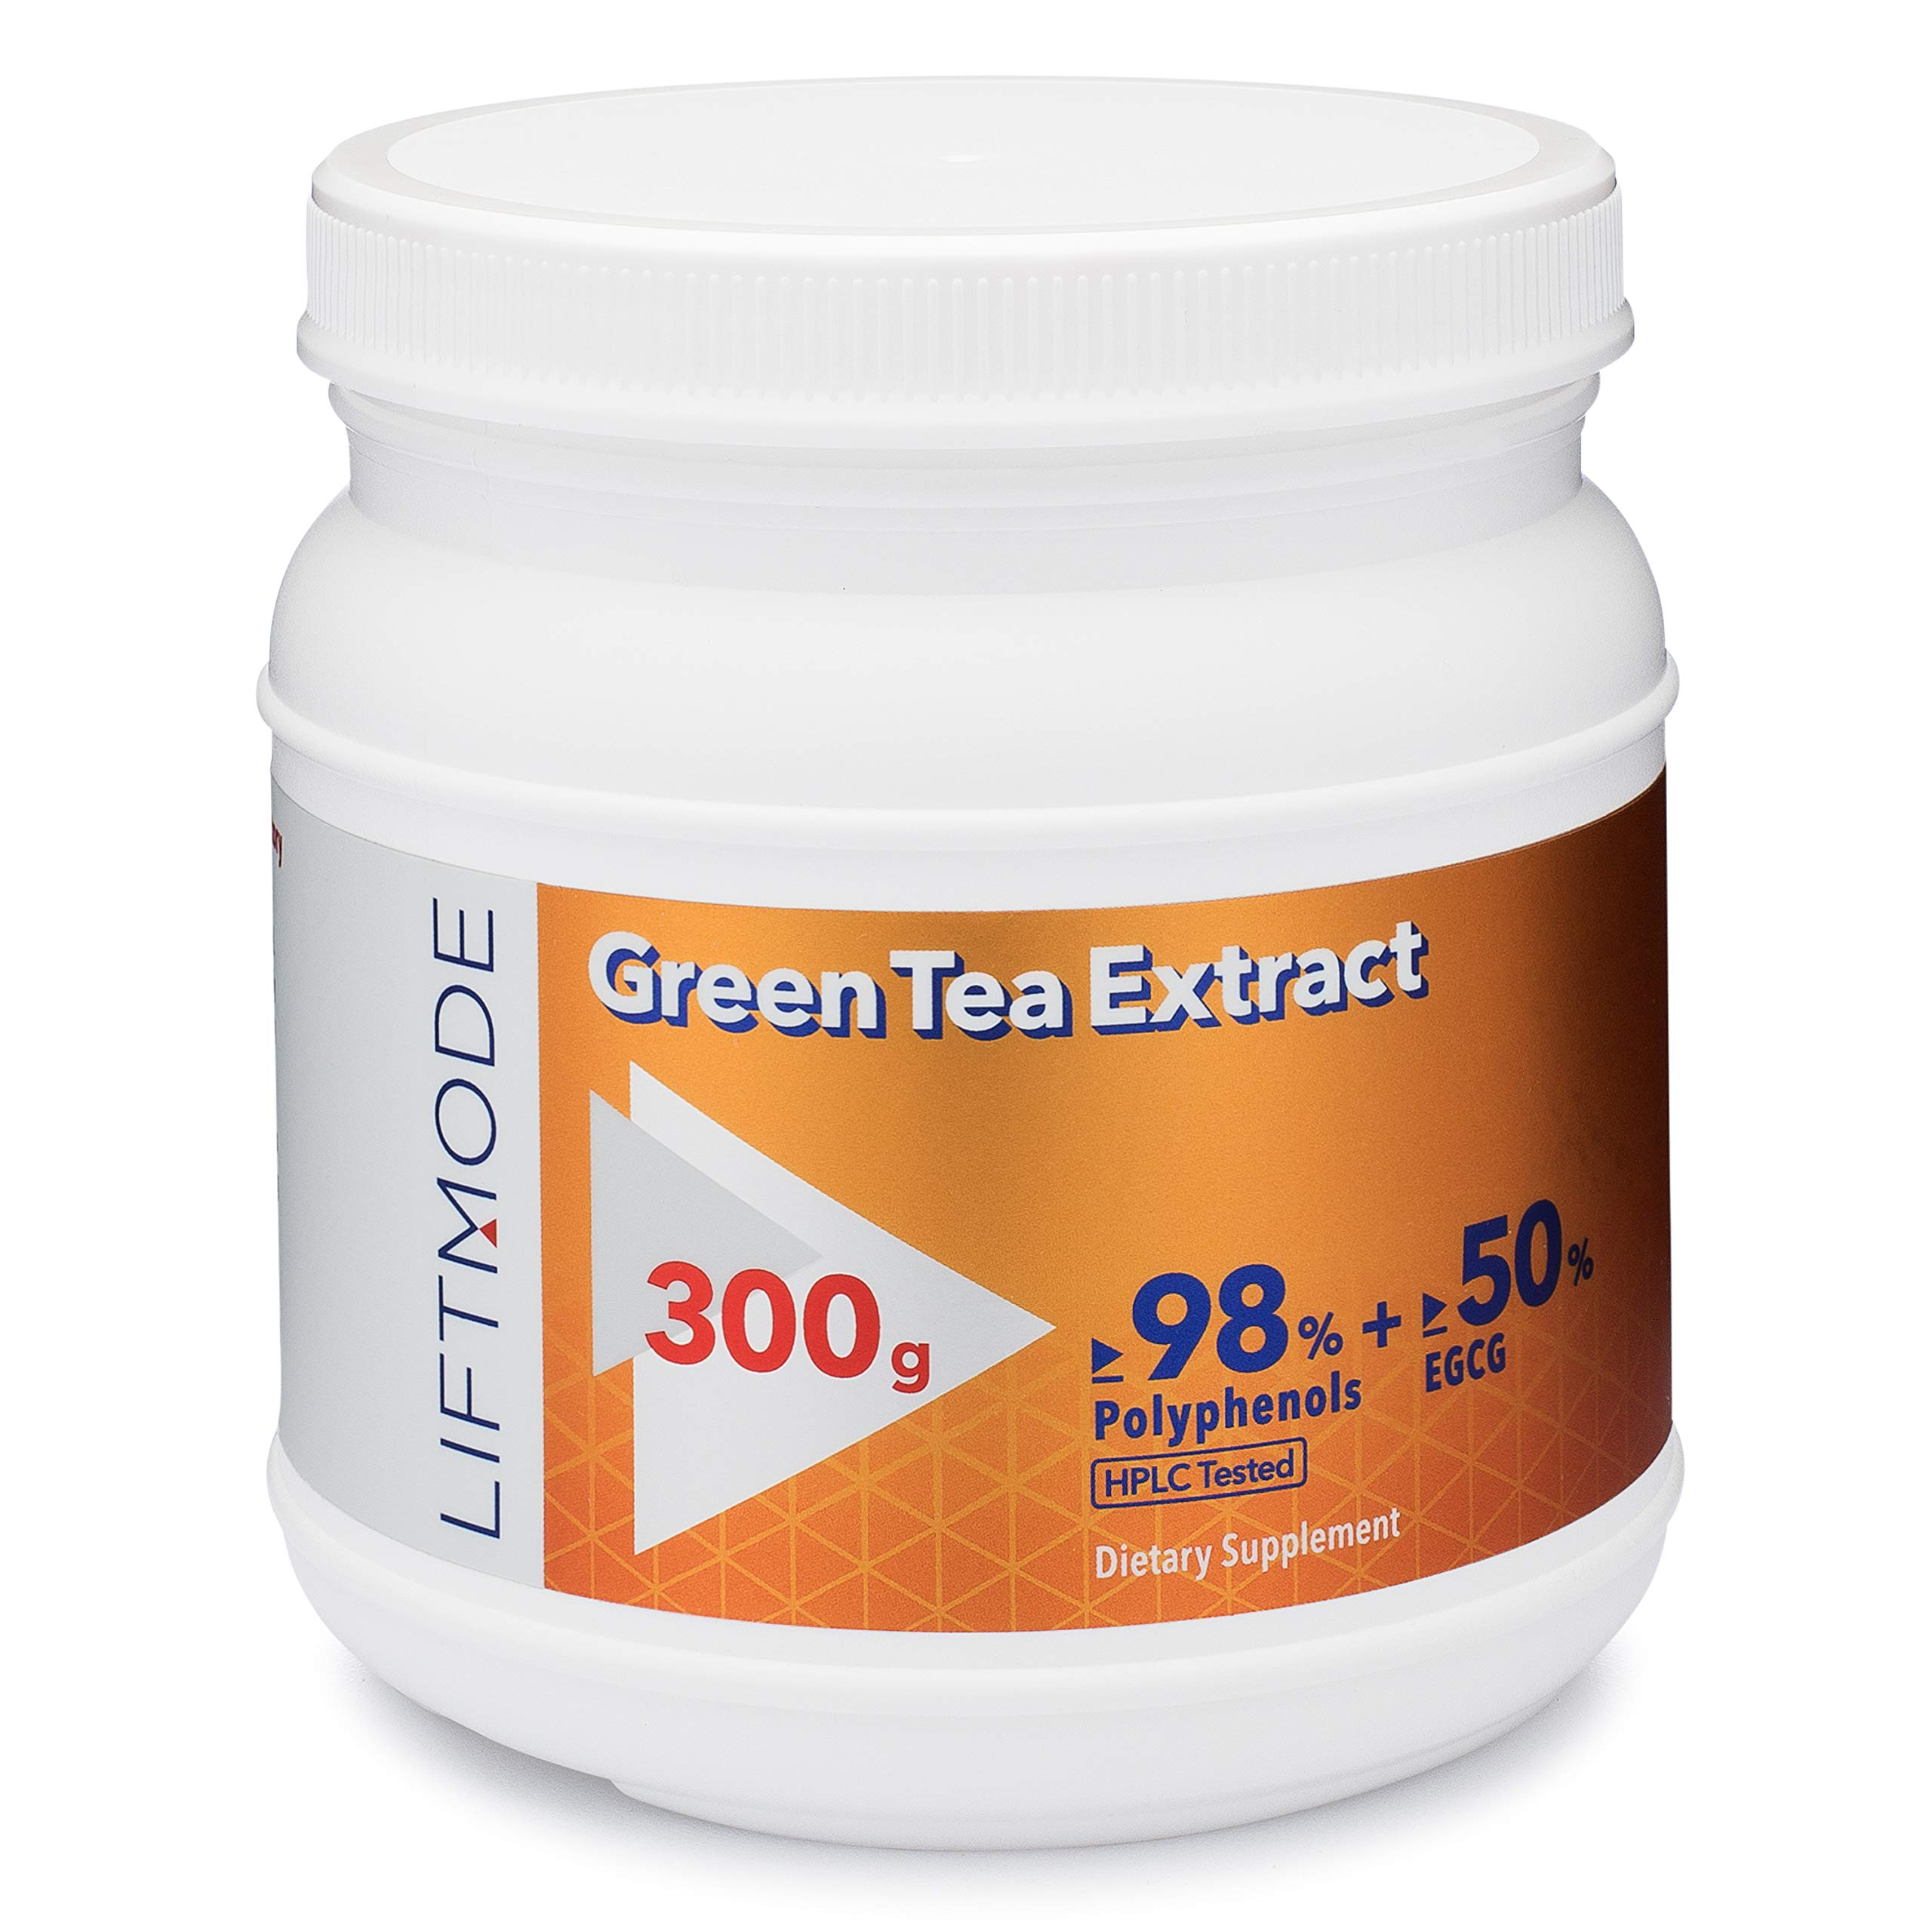 LiftMode Green Tea Extract Pure Bulk Powder Supplement - Natural Fat Burner for Weight Loss, Healthy Heart & Antioxidant | Vegetarian, Vegan, Non-GMO, Gluten Free - 300 Grams (600 Servings)